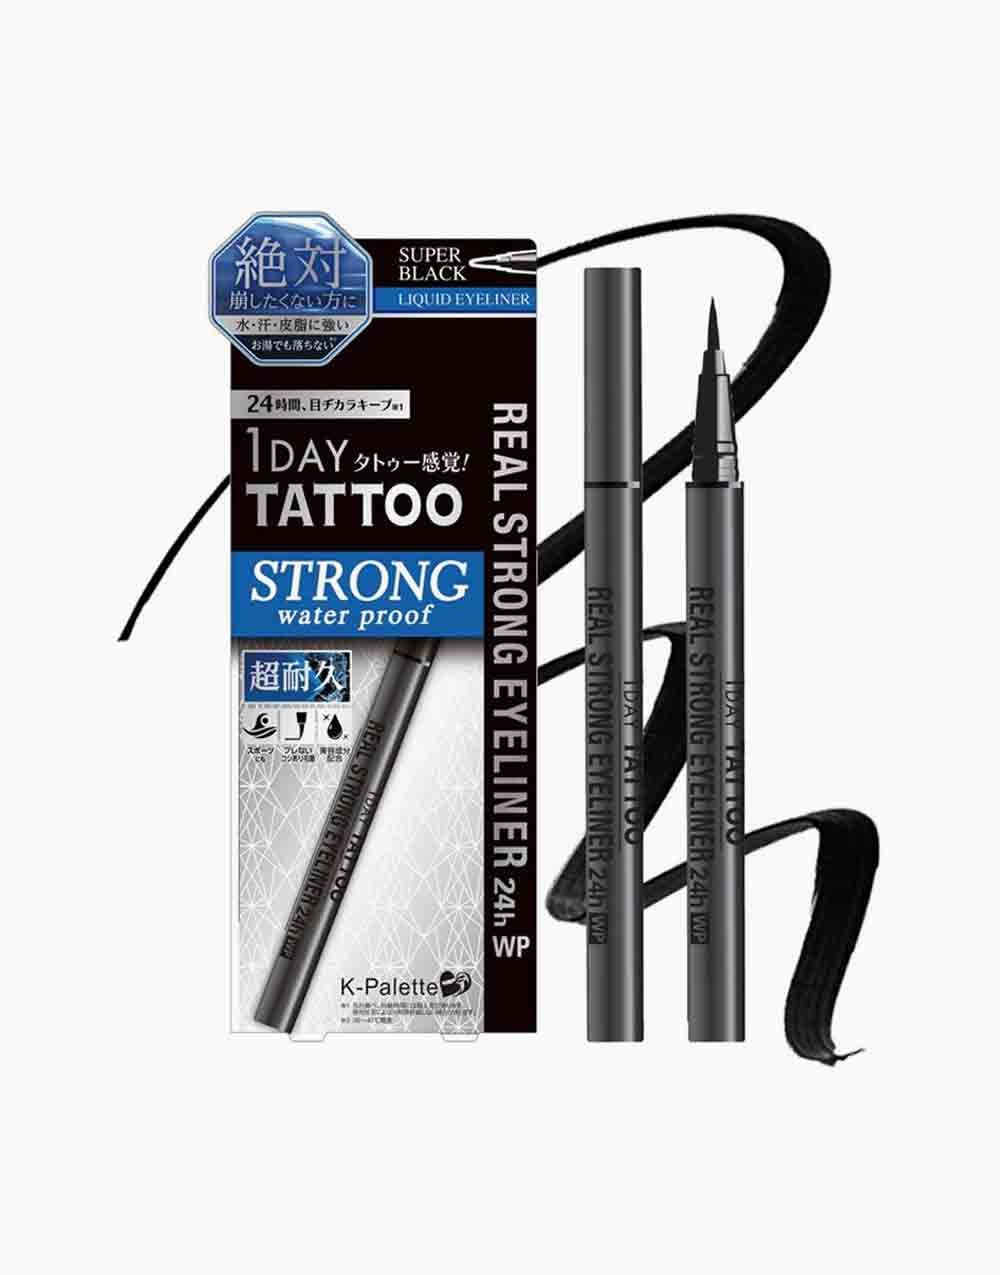 1Day Tattoo Real Strong Eyeliner 24H Waterproof by K-Palette | Super Black